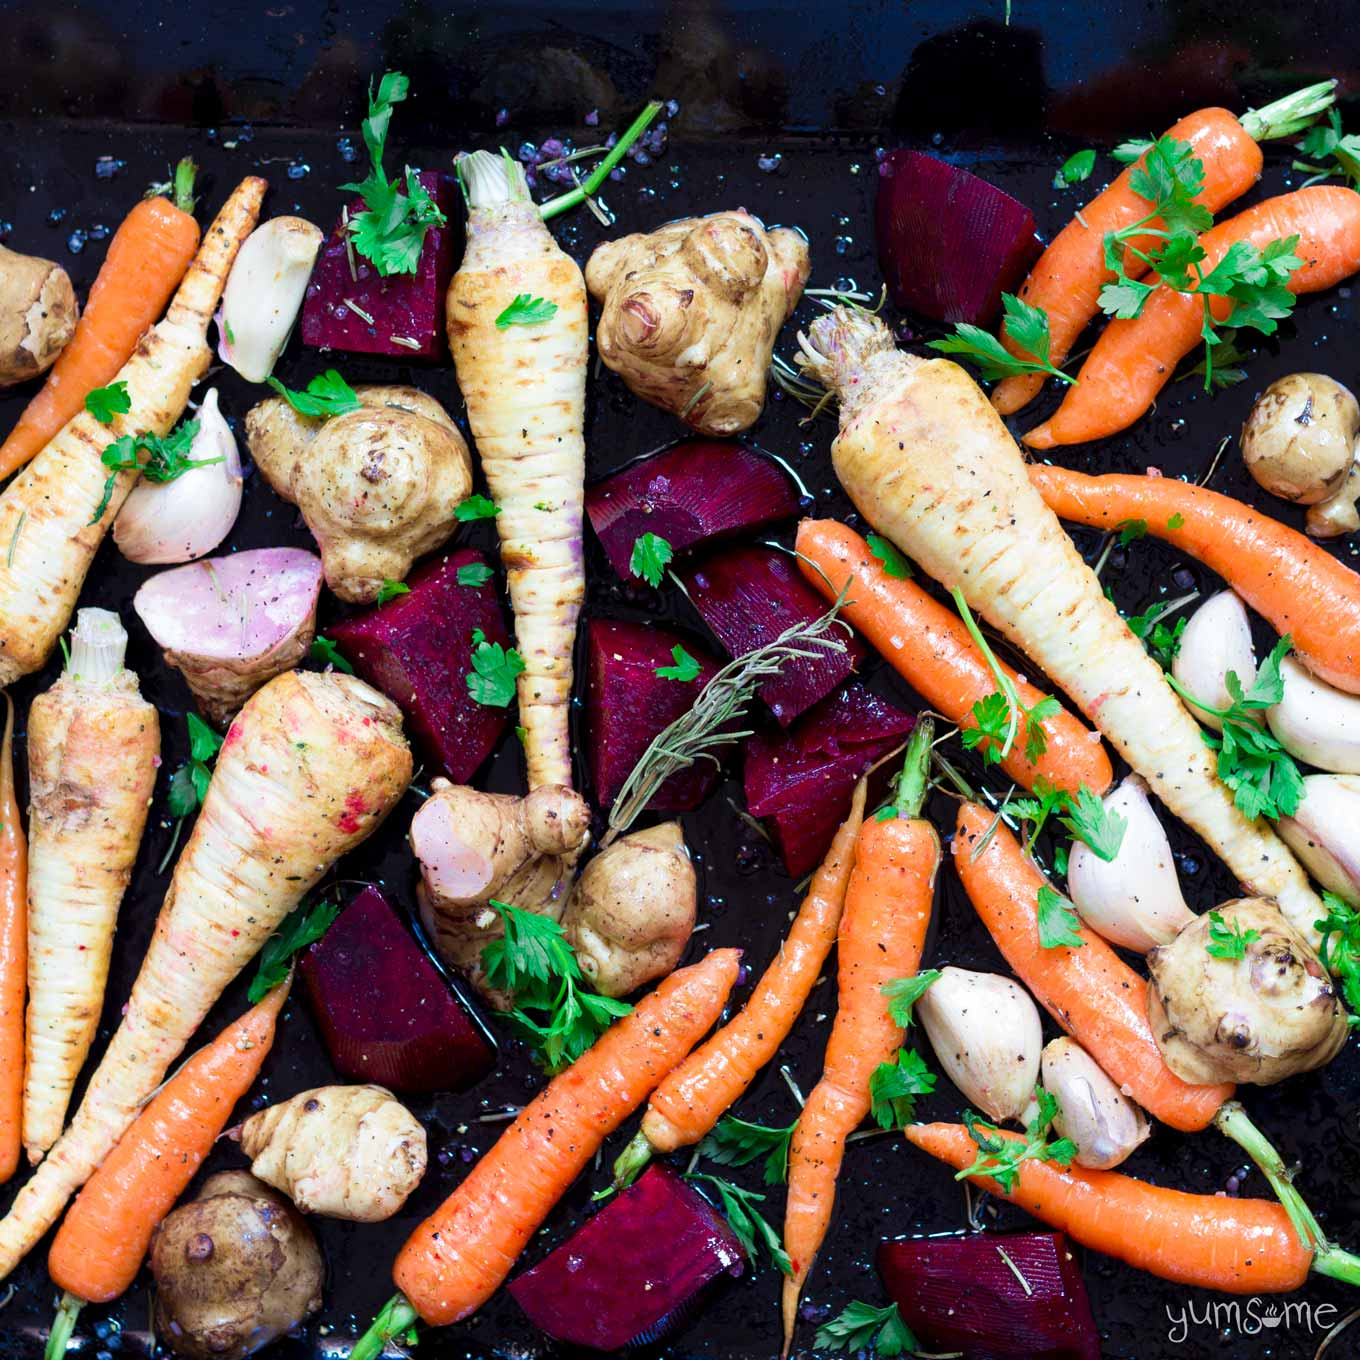 a selection of raw root vegetables | yumsome.com